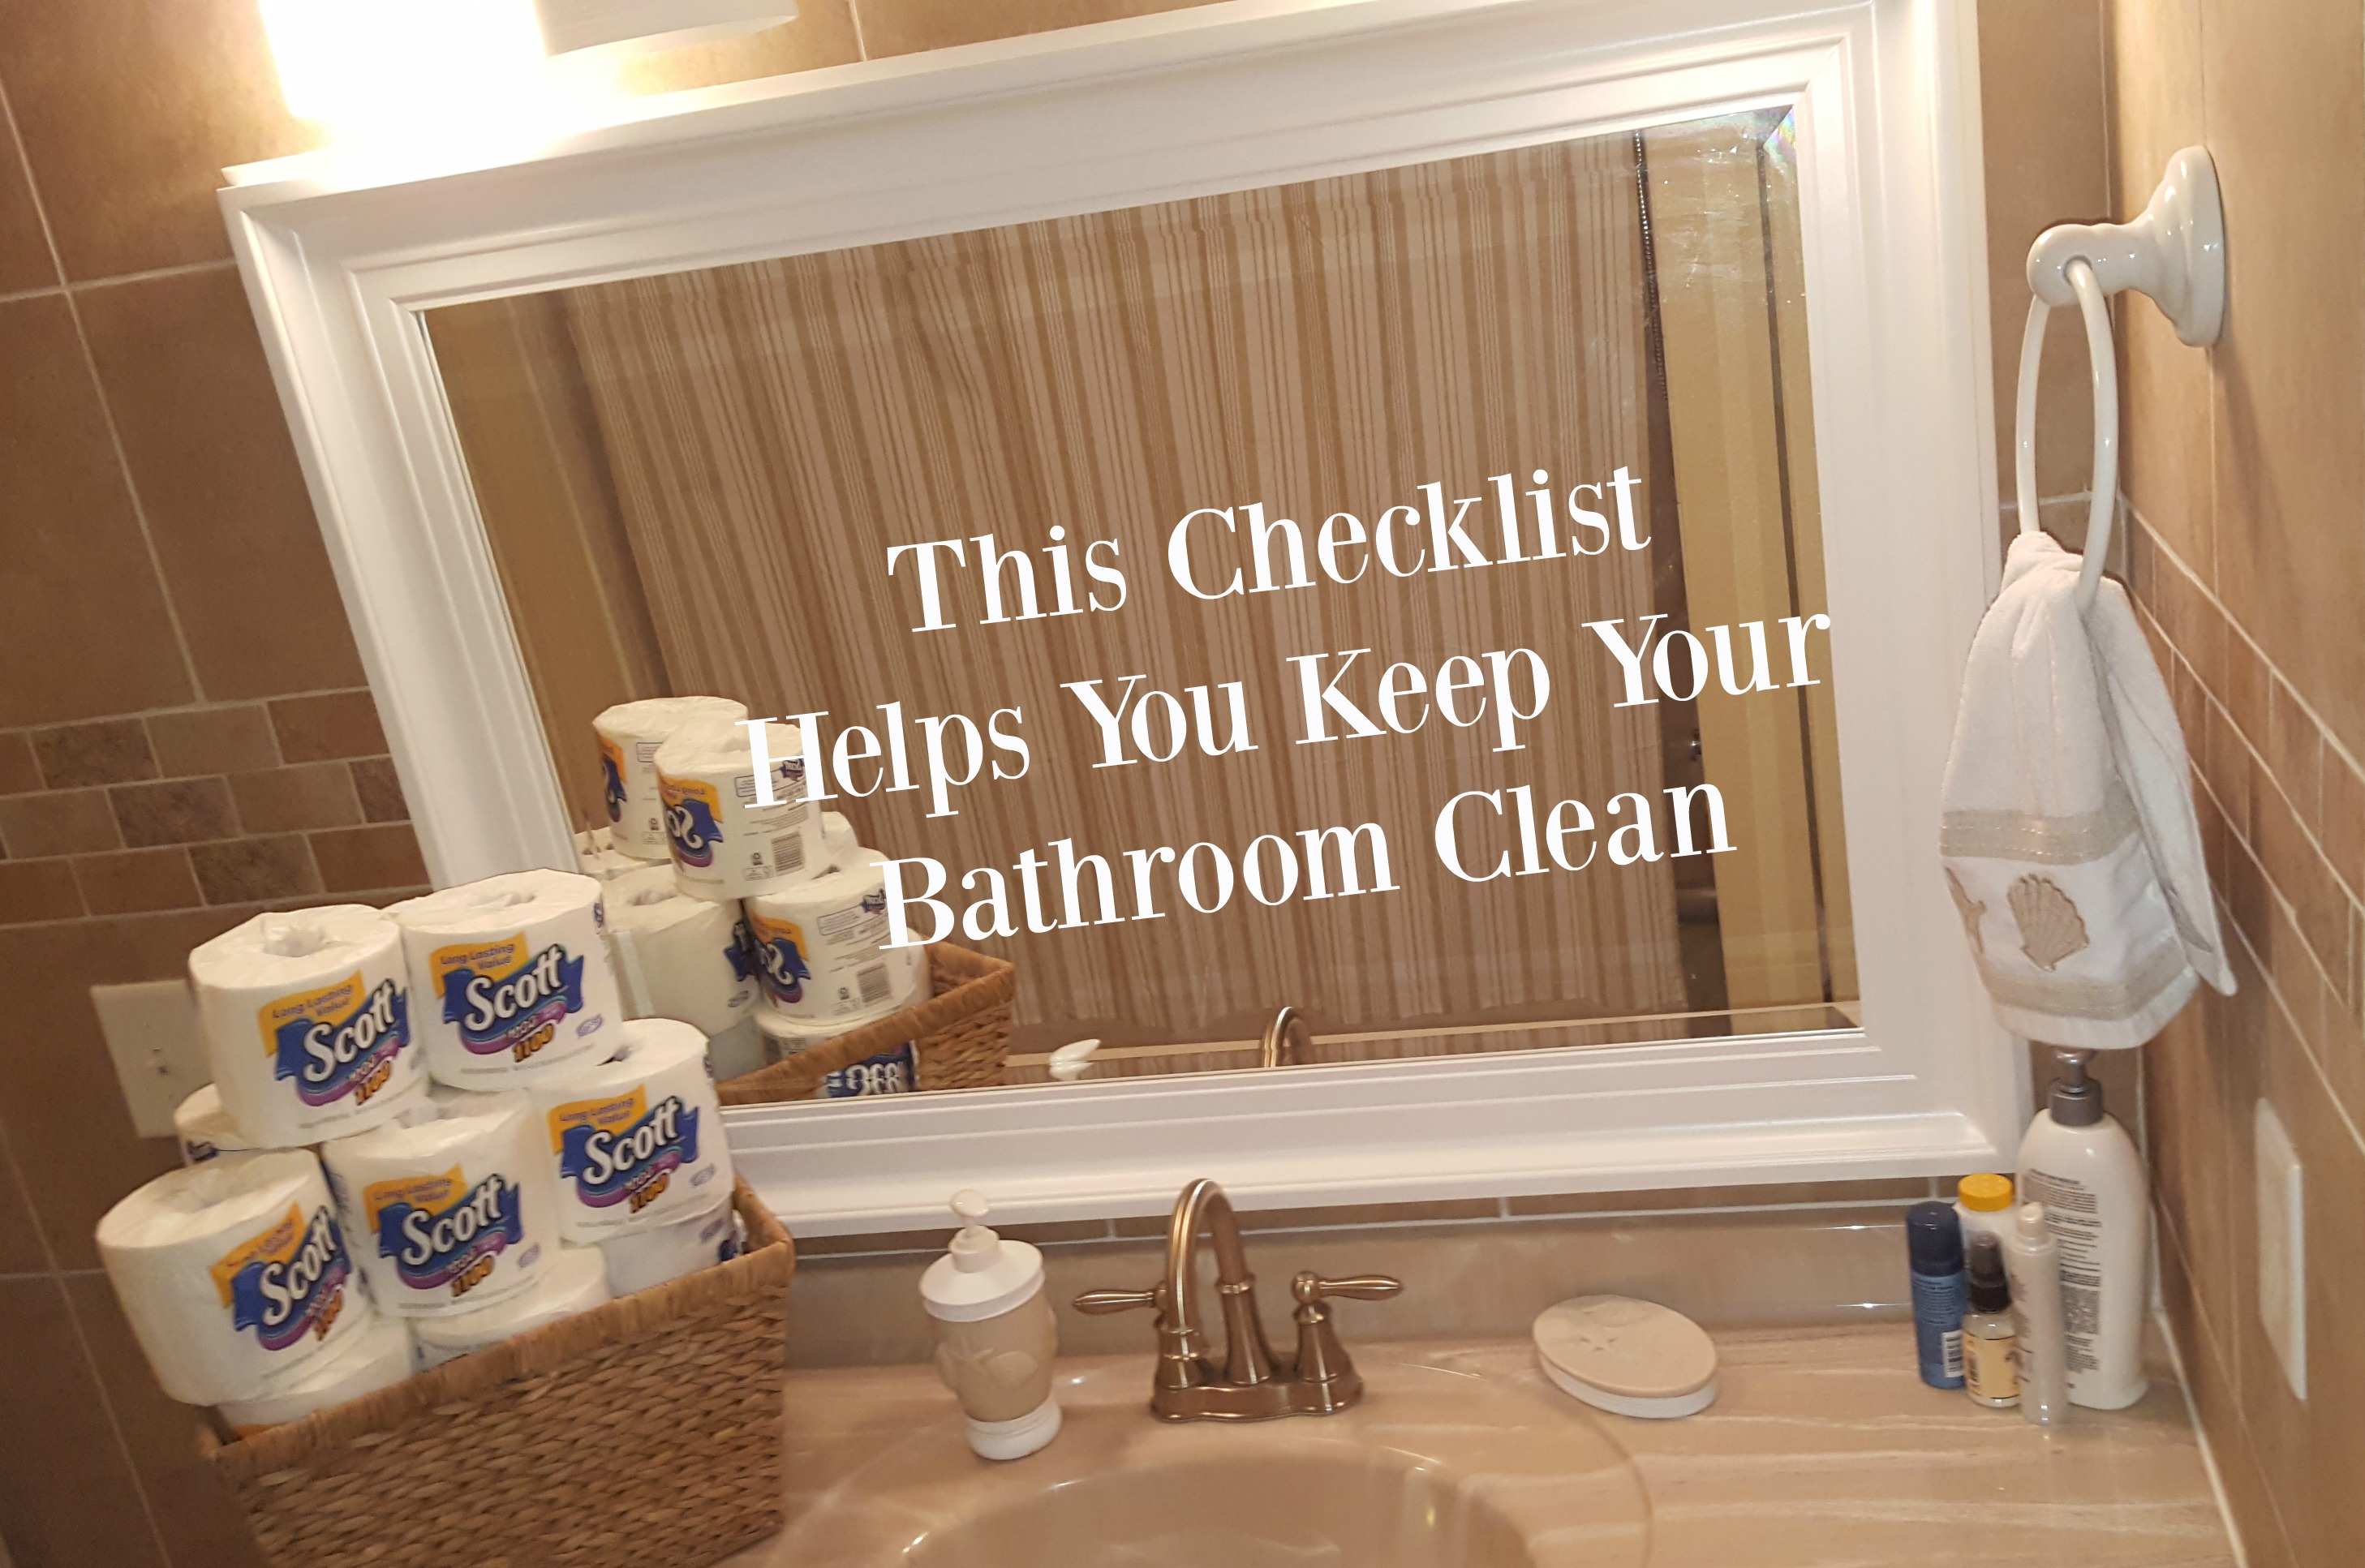 This Checklist Helps You Keep Your Bathroom Clean - How to keep your bathroom clean